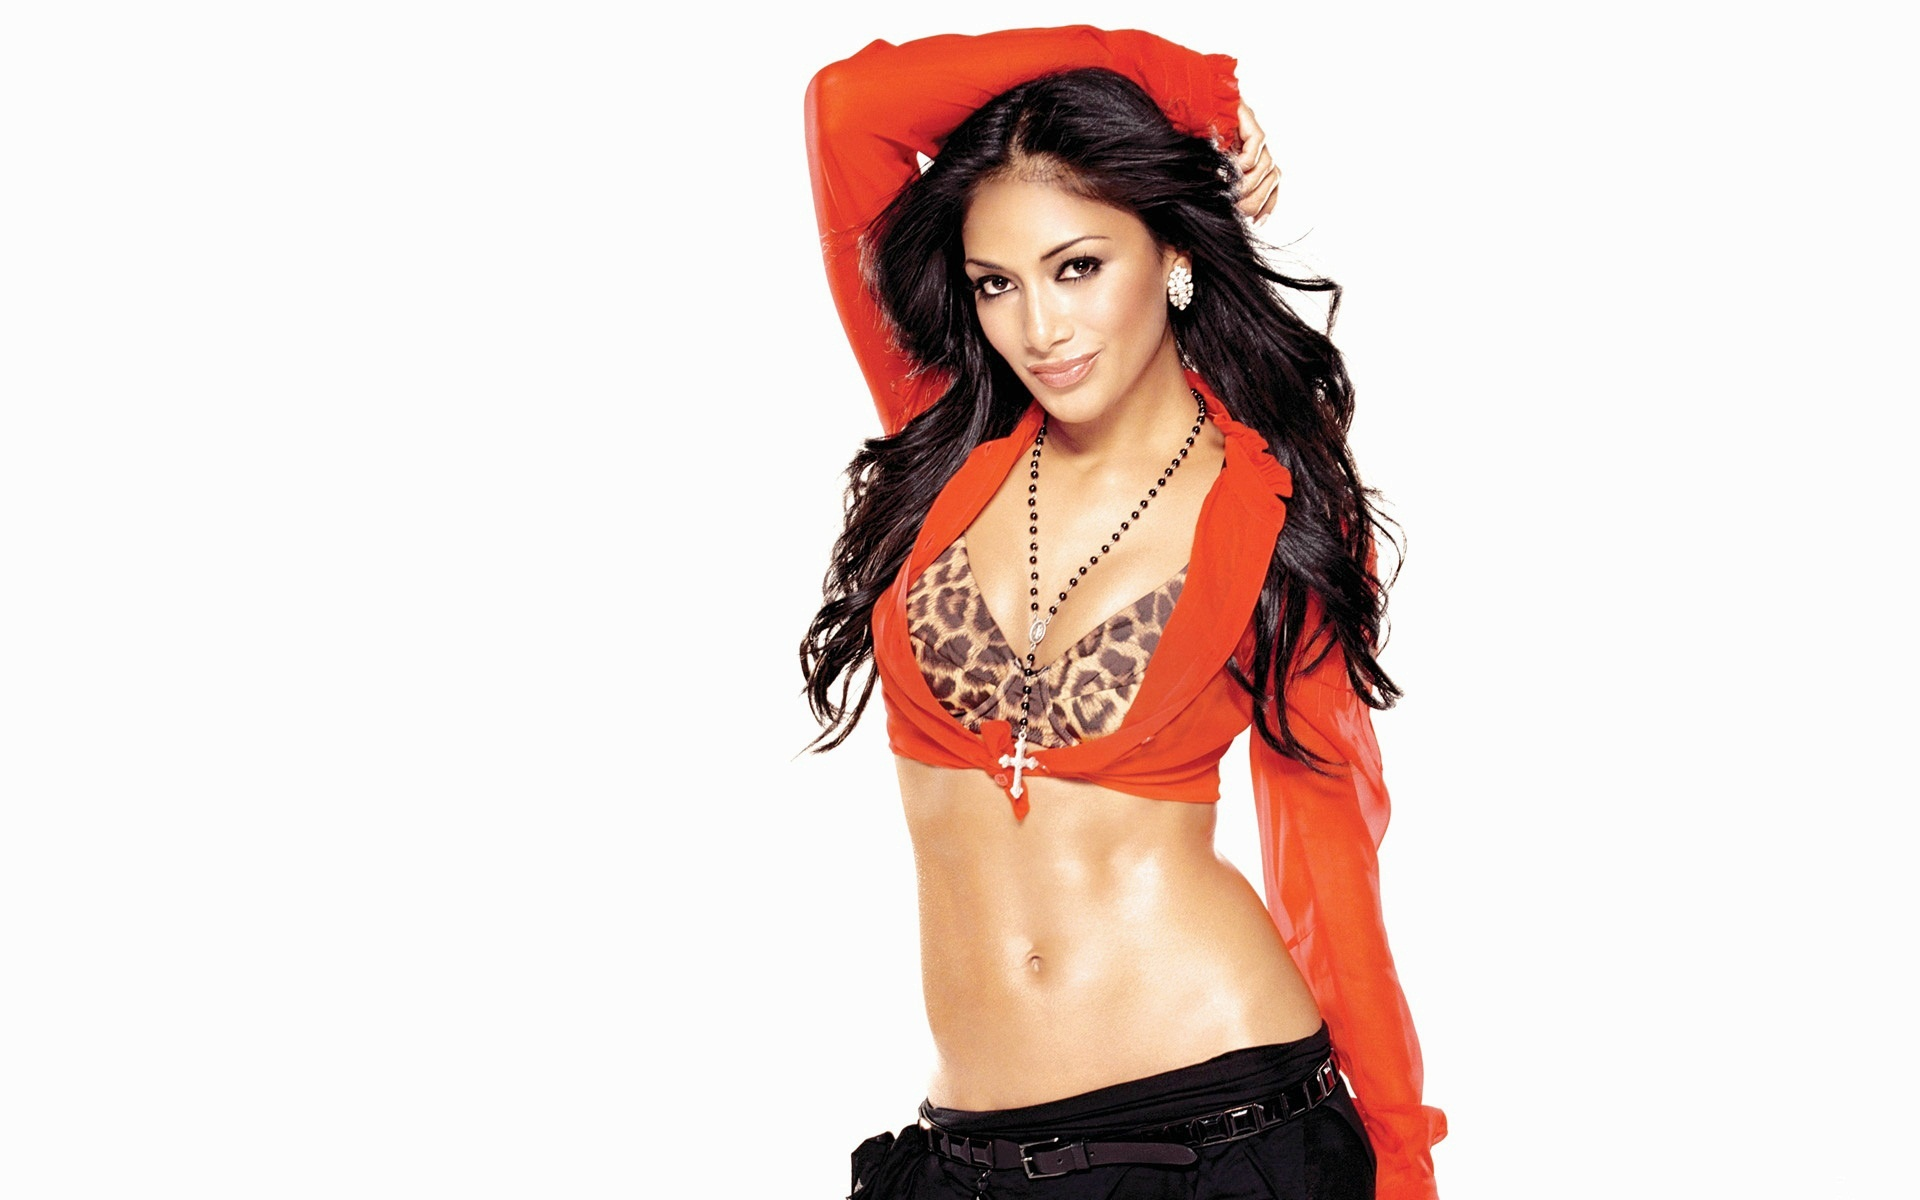 nicole scherzinger wallpapers hd A9